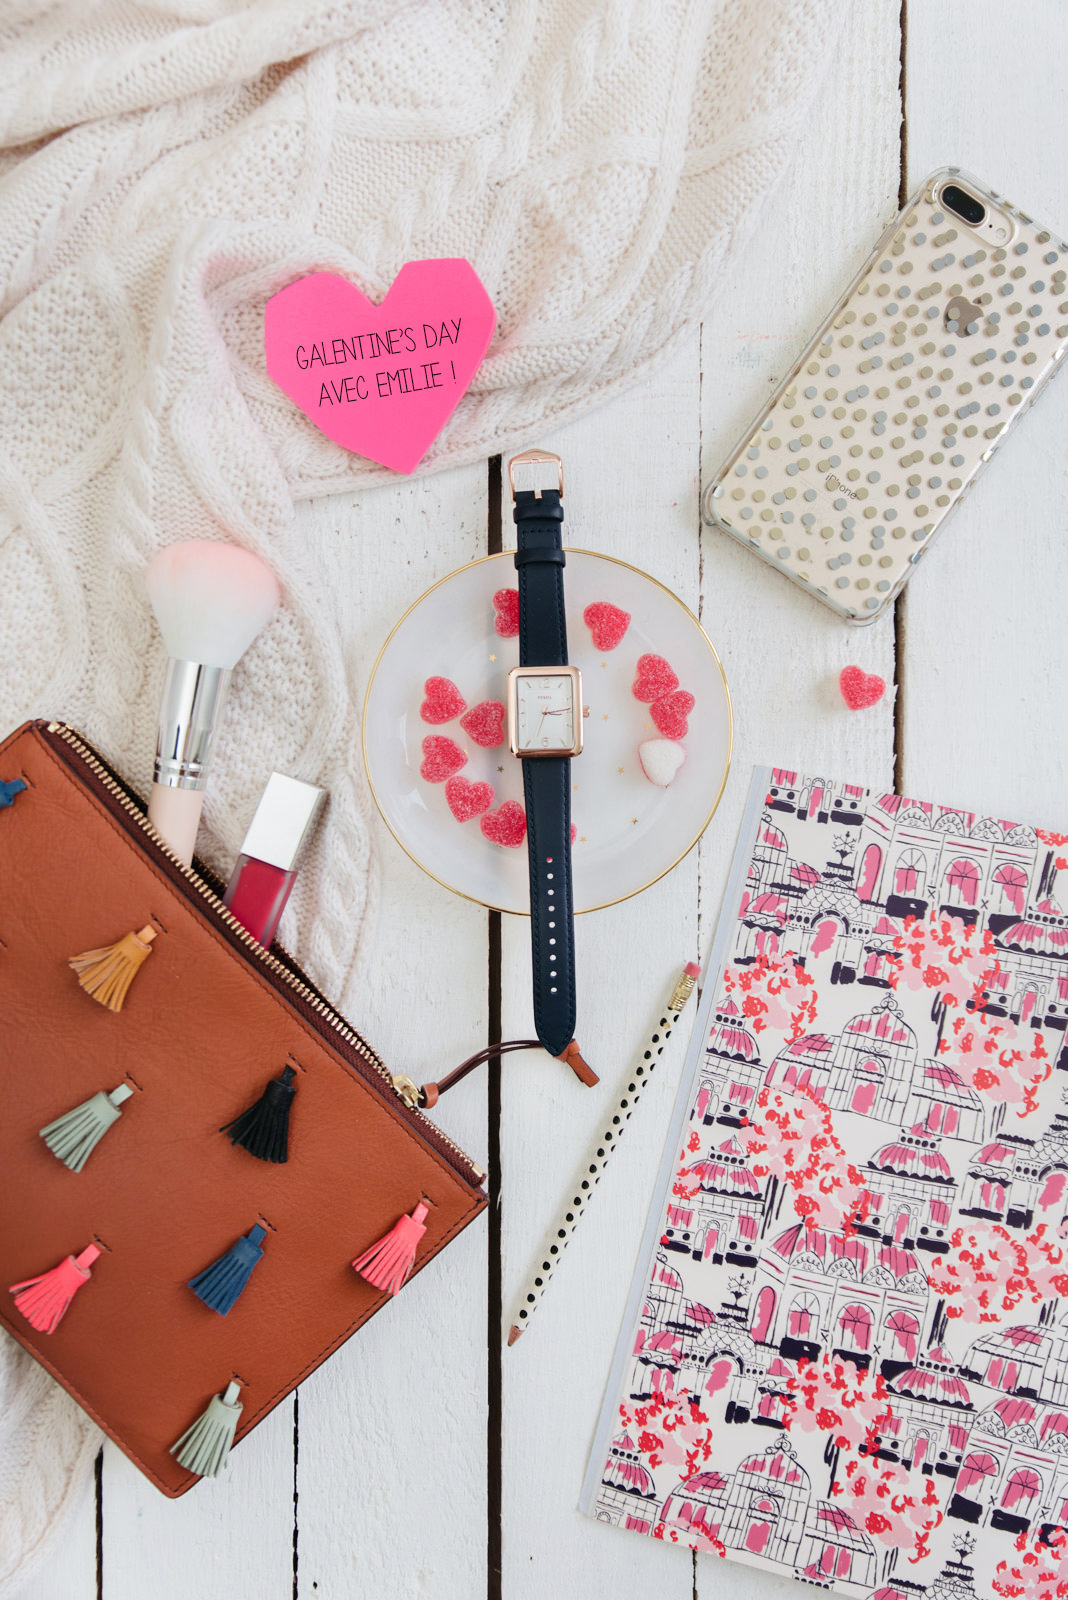 Blog-Mode-And-The-City-Lifestyle-Galentine's-Day-Fossil